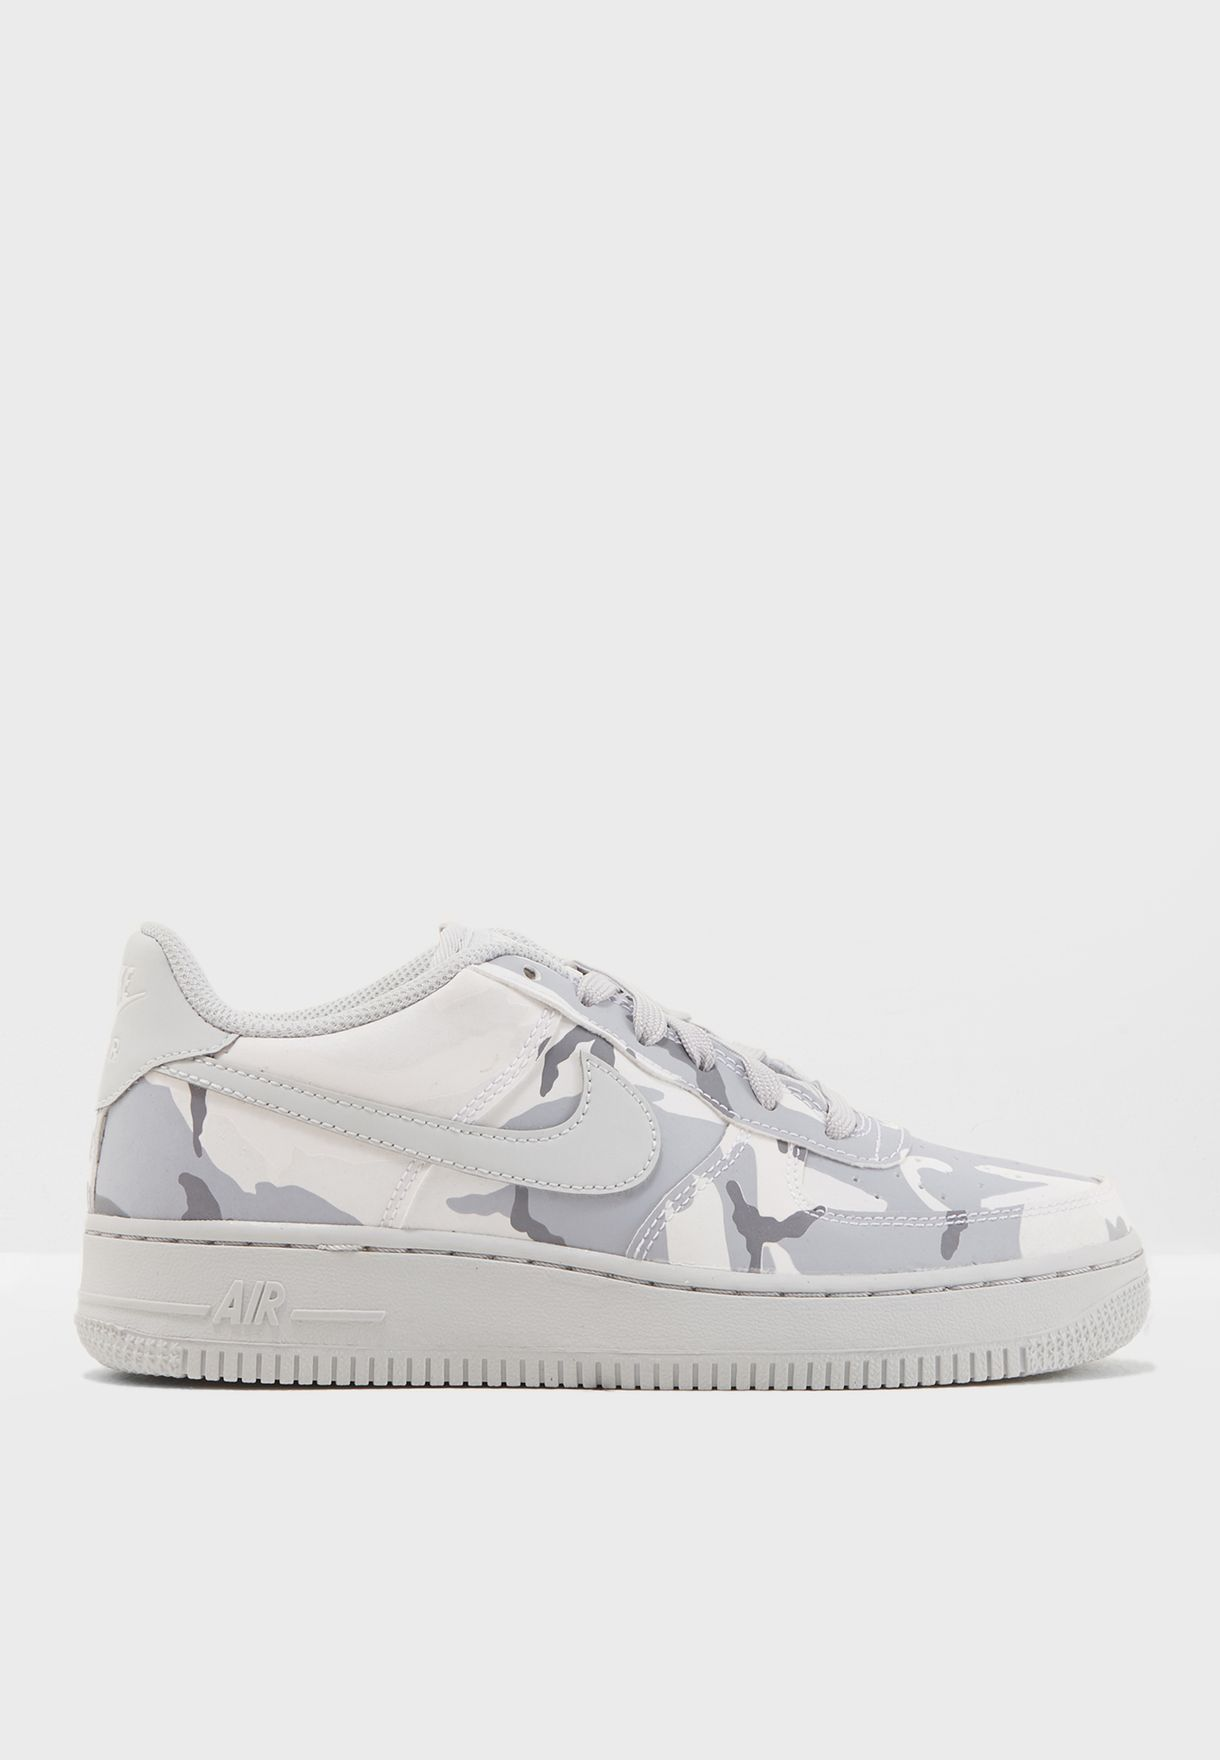 low priced 72819 a1fc6 Air Force 1 LV8 Youth